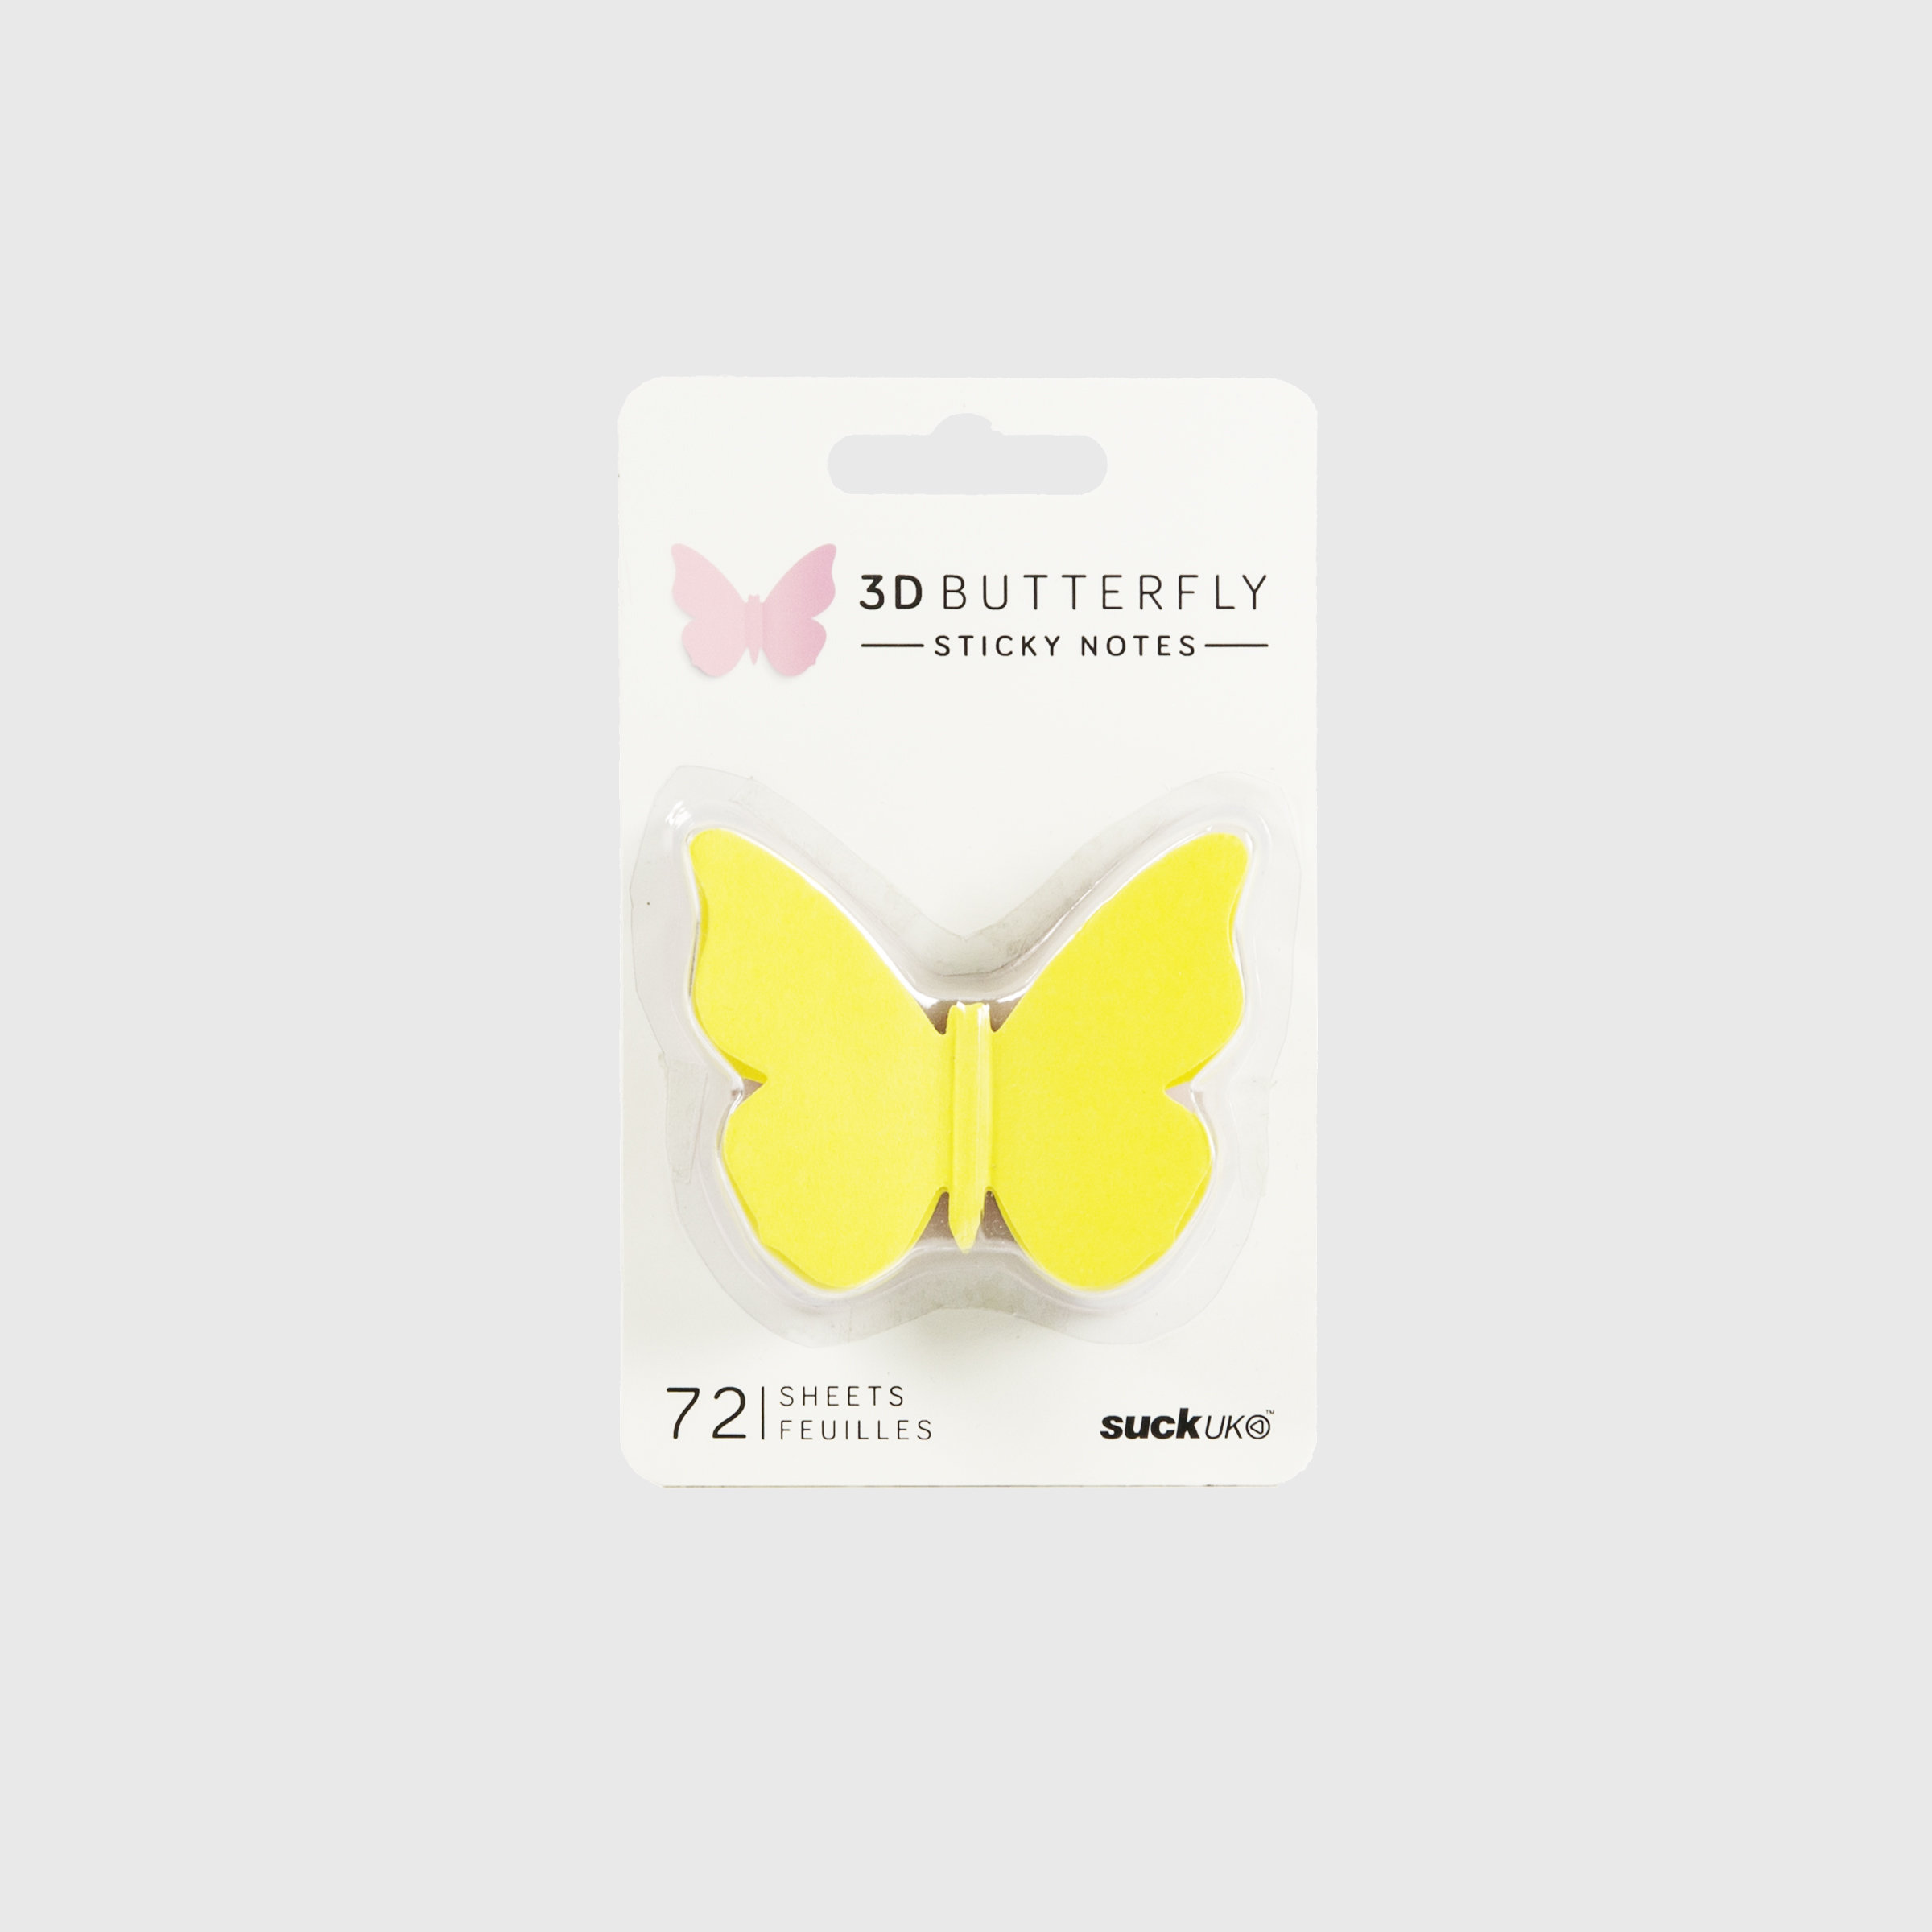 3D butterfly sticky notes in packaging